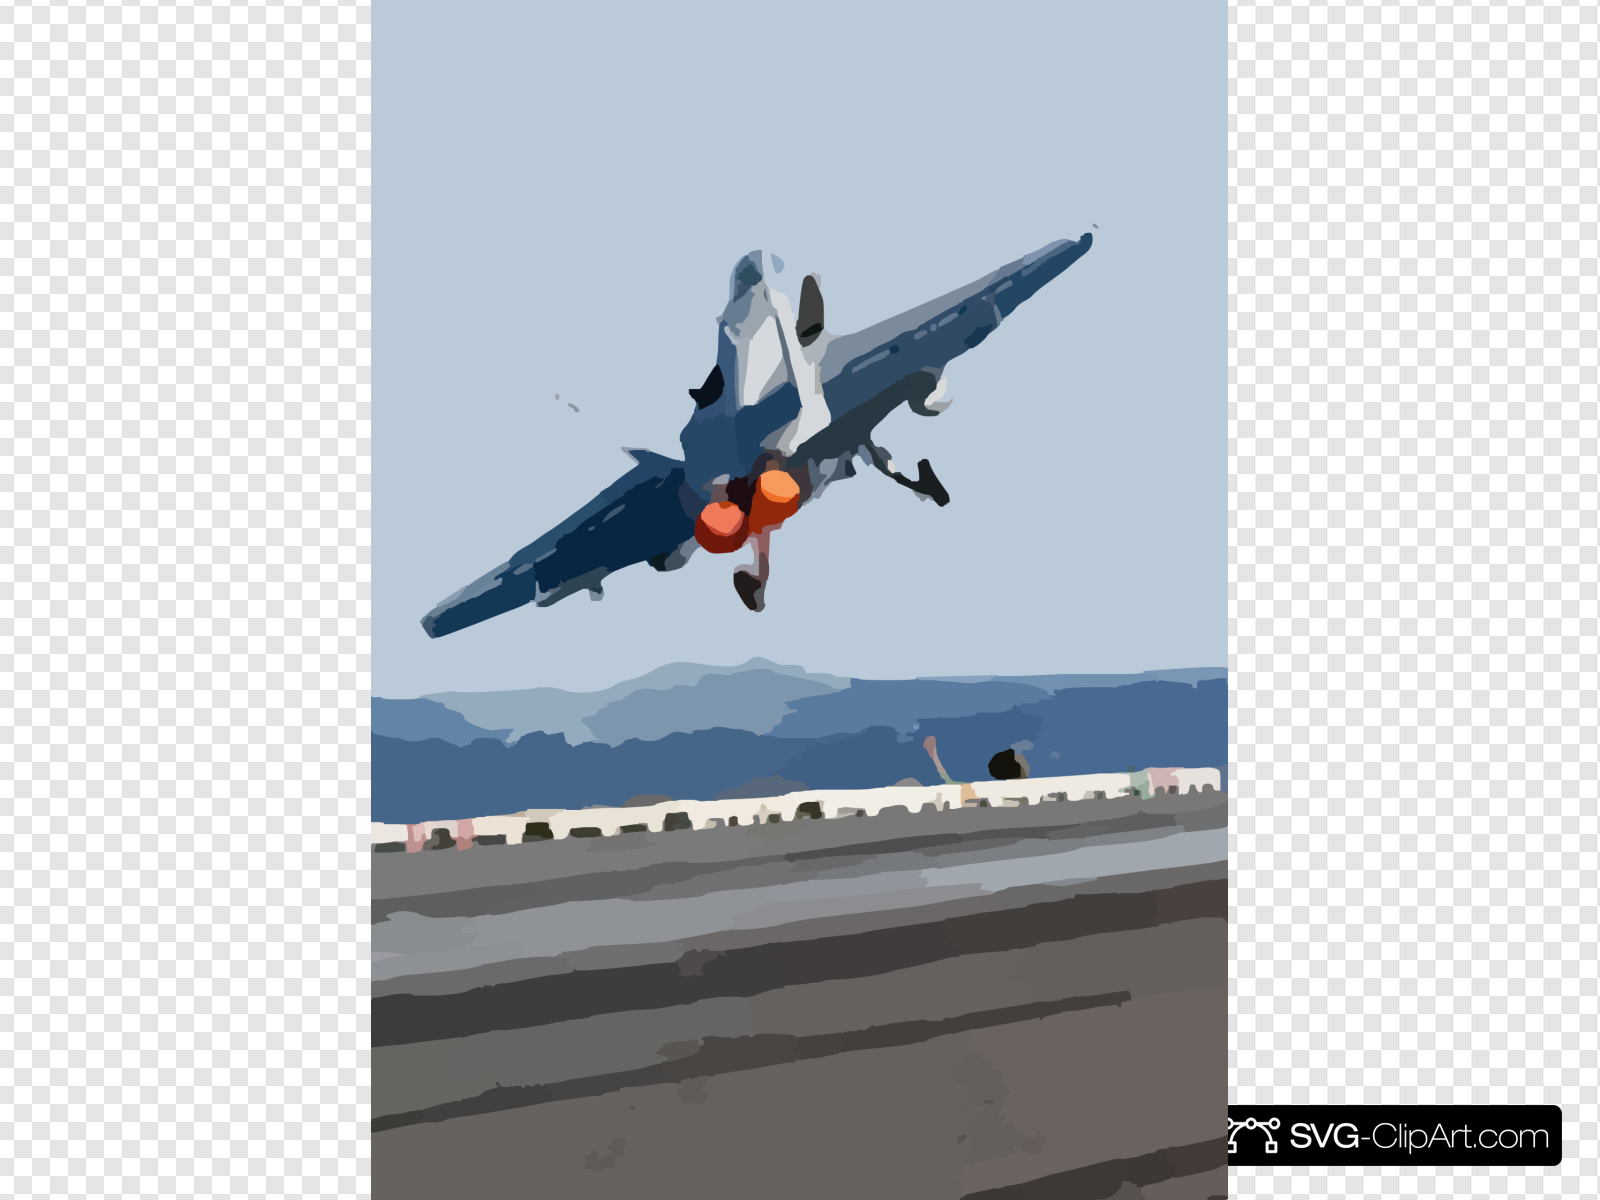 Airplane flight deck clipart vector transparent Hornet Launches From One Of Four Steam Powered Catapults On The Ship ... vector transparent